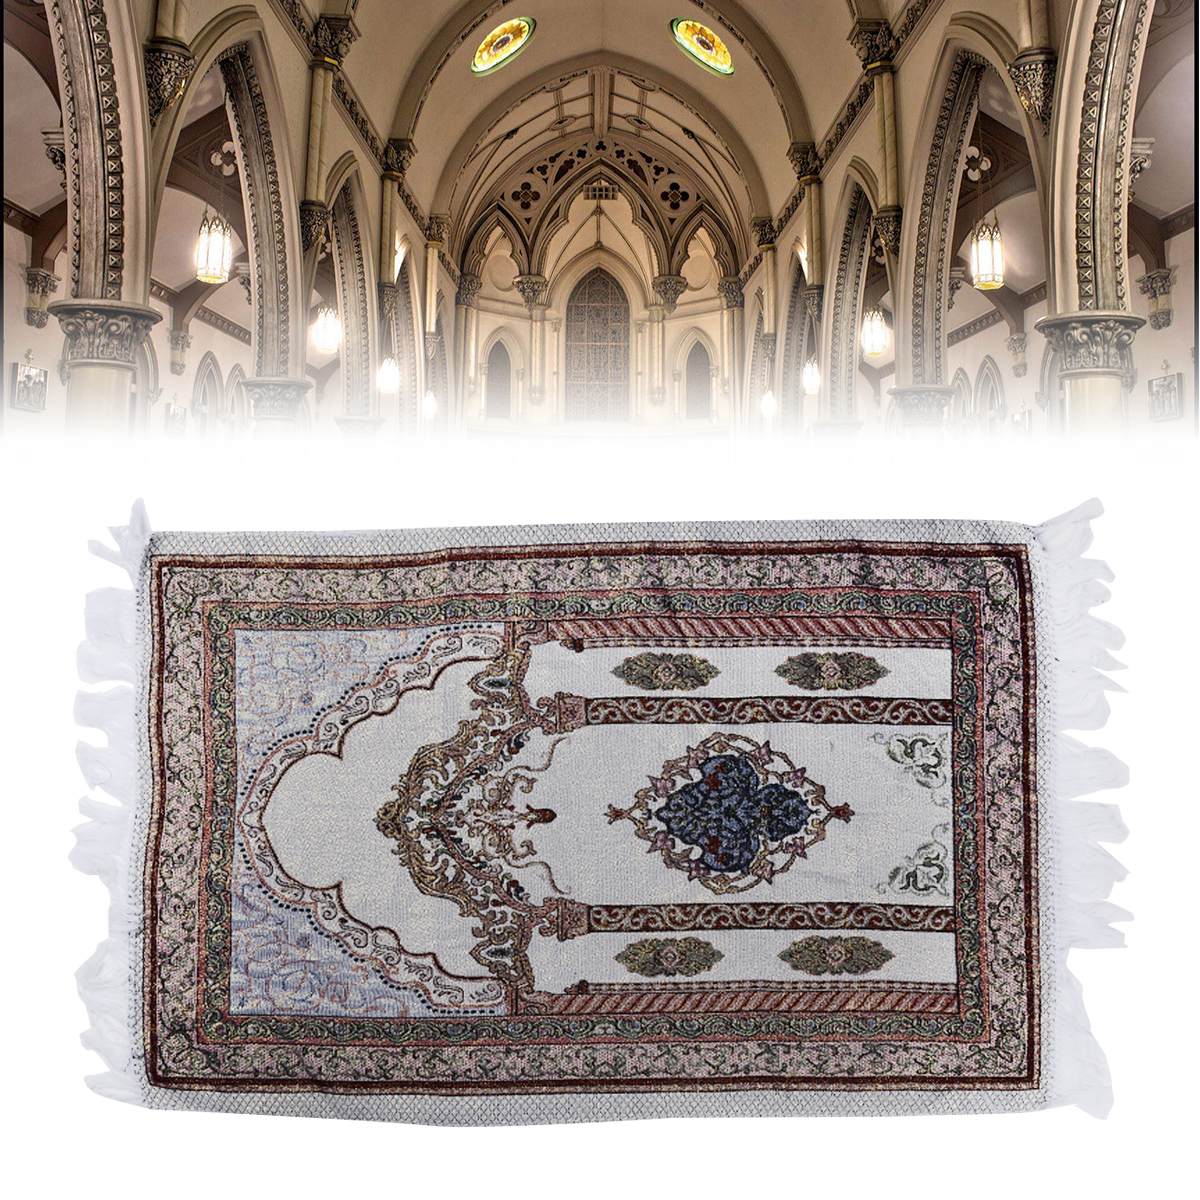 1Piece 70*110cm Muslim Prayer Rug Prayer Carpet Mat Salat Namaz Islamic Arabian Style Islamic Eid Decoration Gift